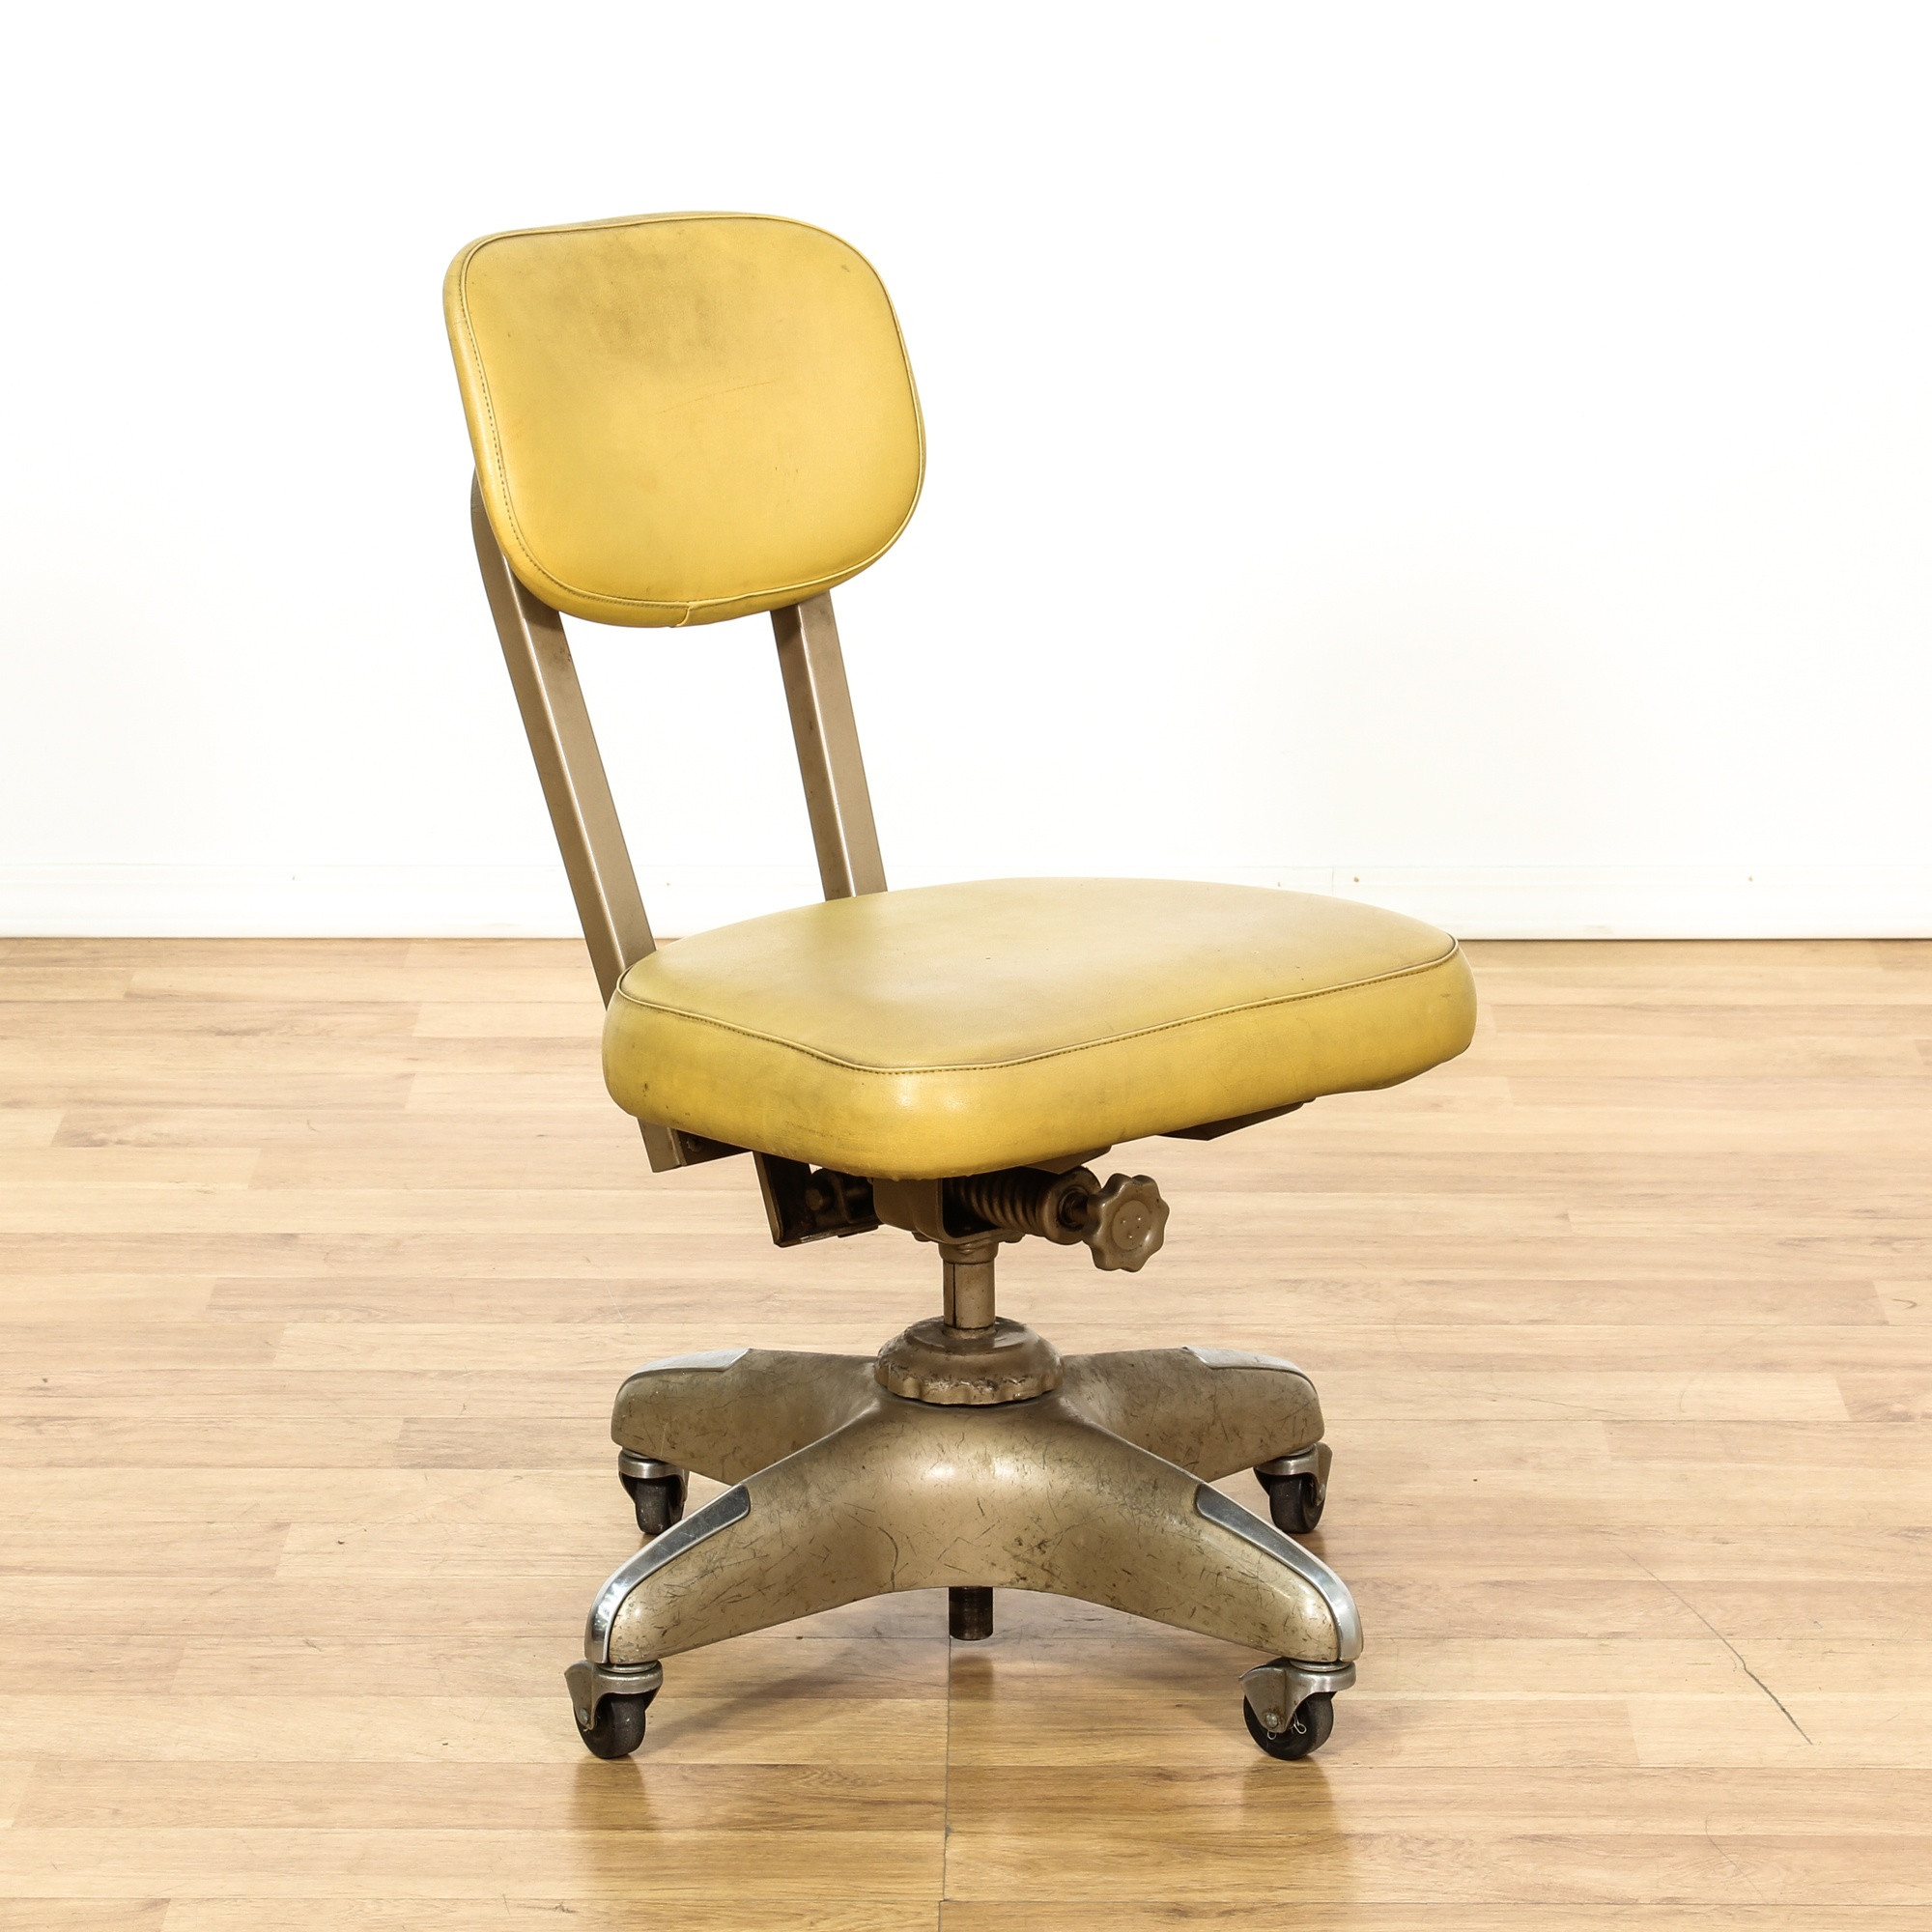 Best ideas about Mid Century Office Chair . Save or Pin Mid Century fice Swivel Desk Chair Now.